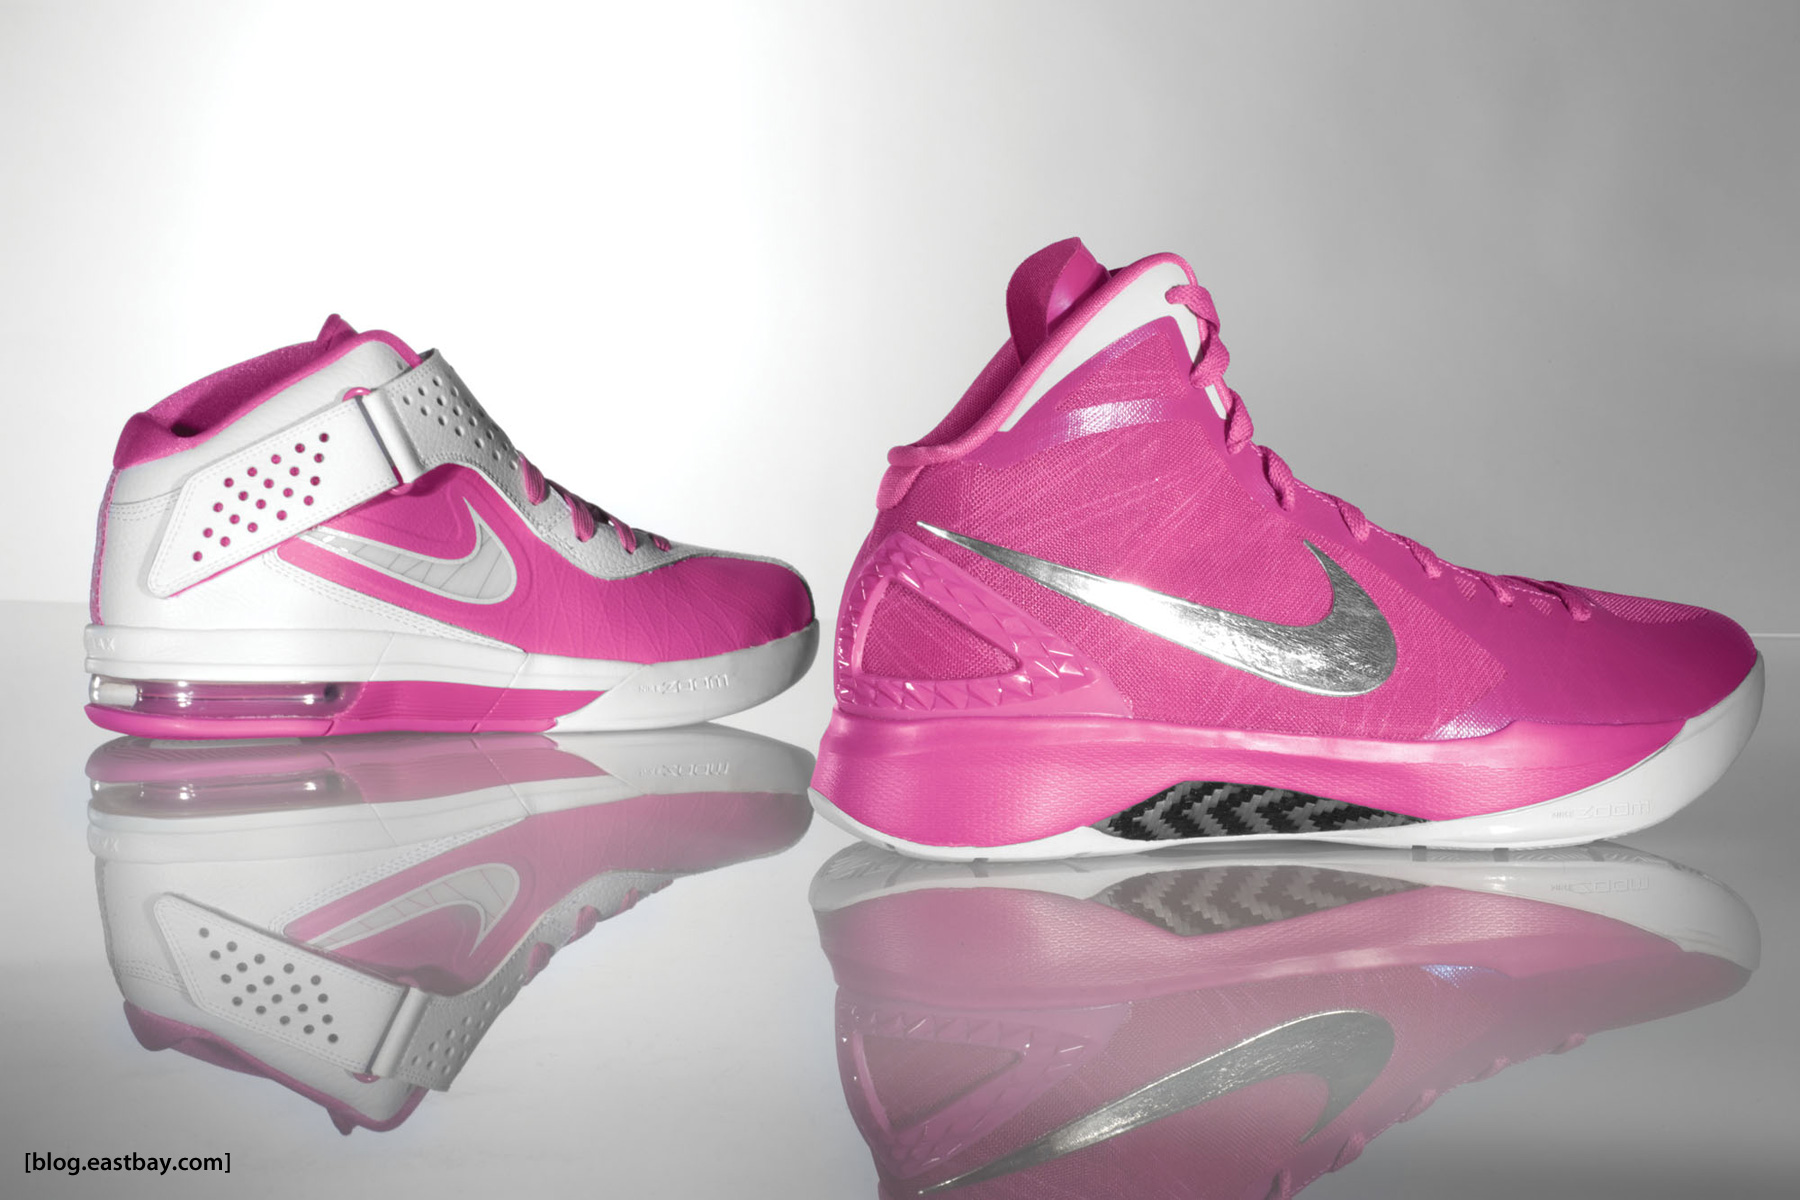 Top Nike Hyperdunk Basketball Shoes Pink Wallpapers 1800x1200